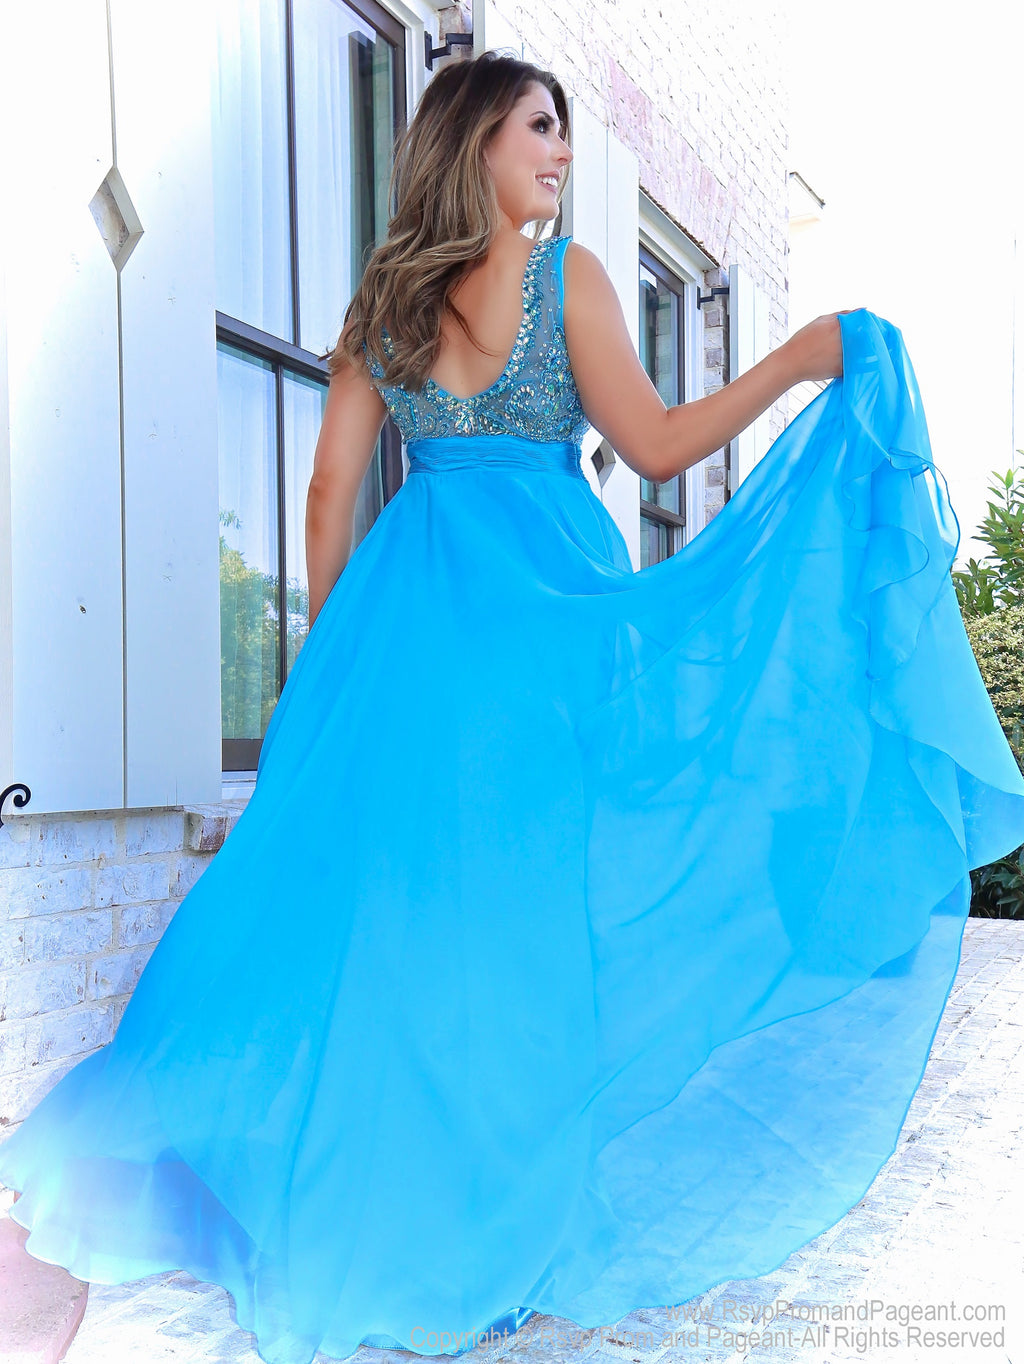 Back of Brunette in a sweet A-line gown has a beautifully beaded neckline and a rouched waistline over the full flowing chiffon skirt. And it's at Rsvp Prom and Pageant, your source of the HOTTEST Prom and Pageant Dresses and Exclusive Evening Gowns and located in Atlanta, Georgia!